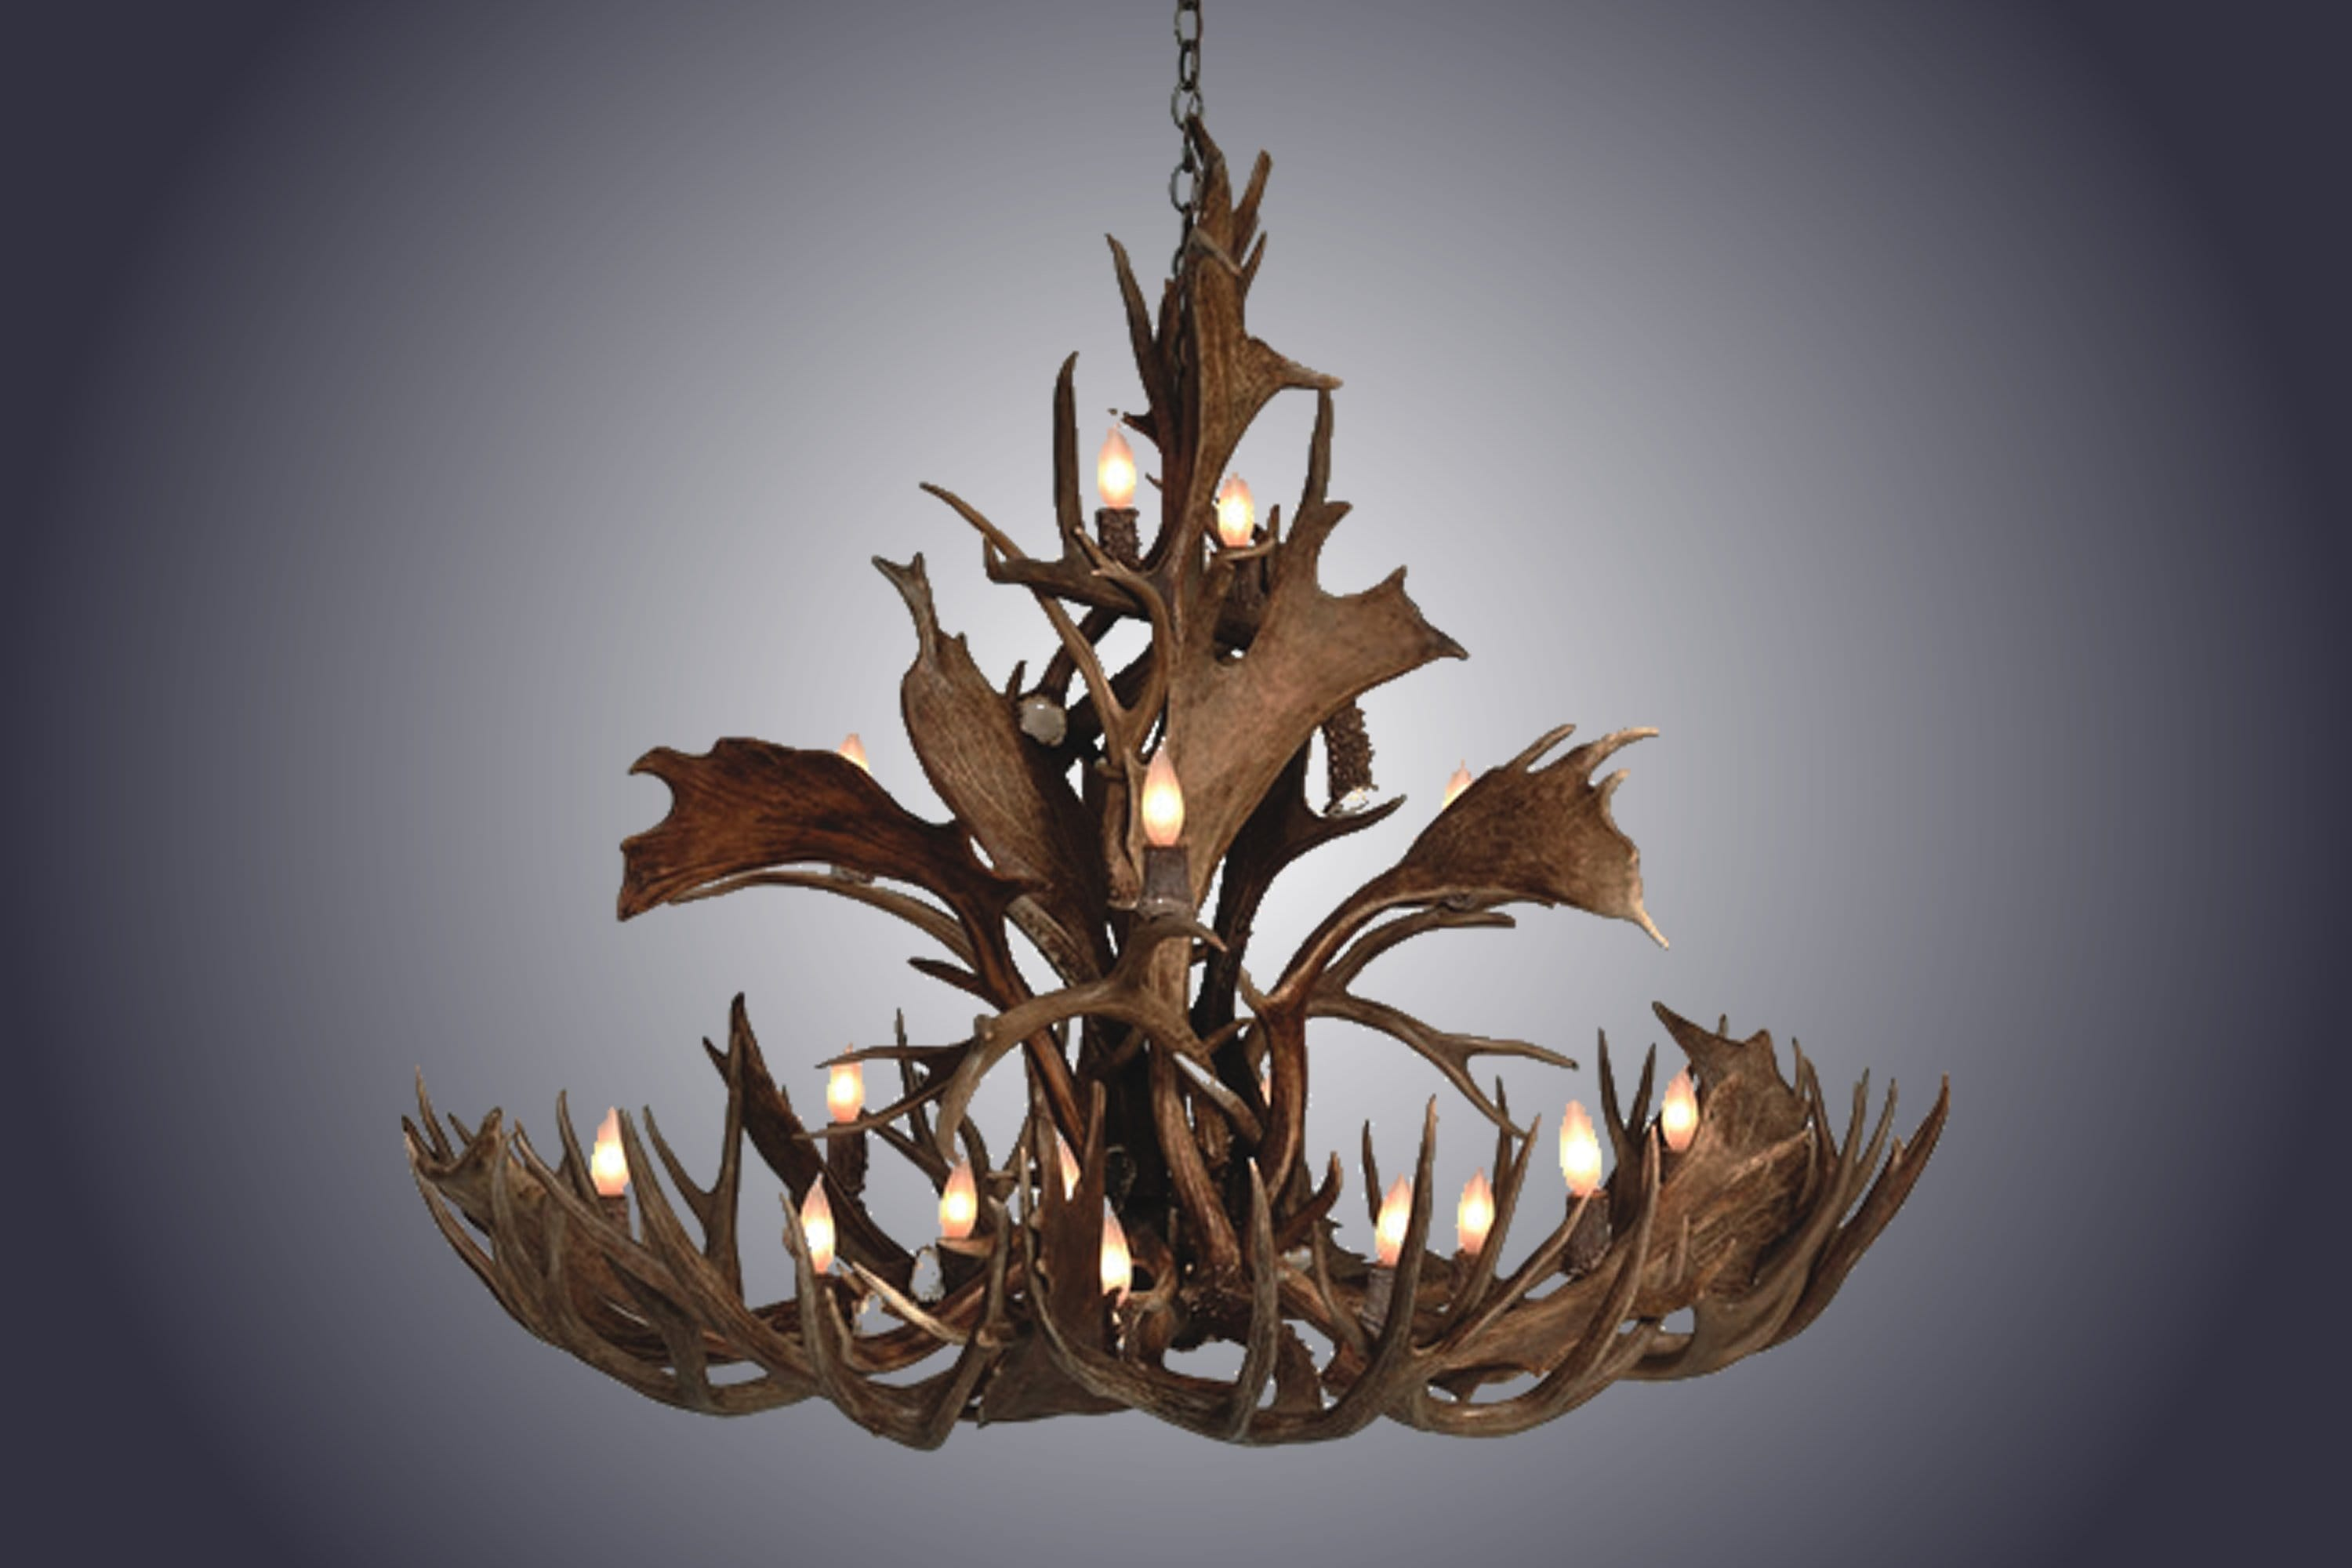 14 Light Small Mule/Fallow Cascading Antler Chandelier (SKU-145S) - Antlerworx